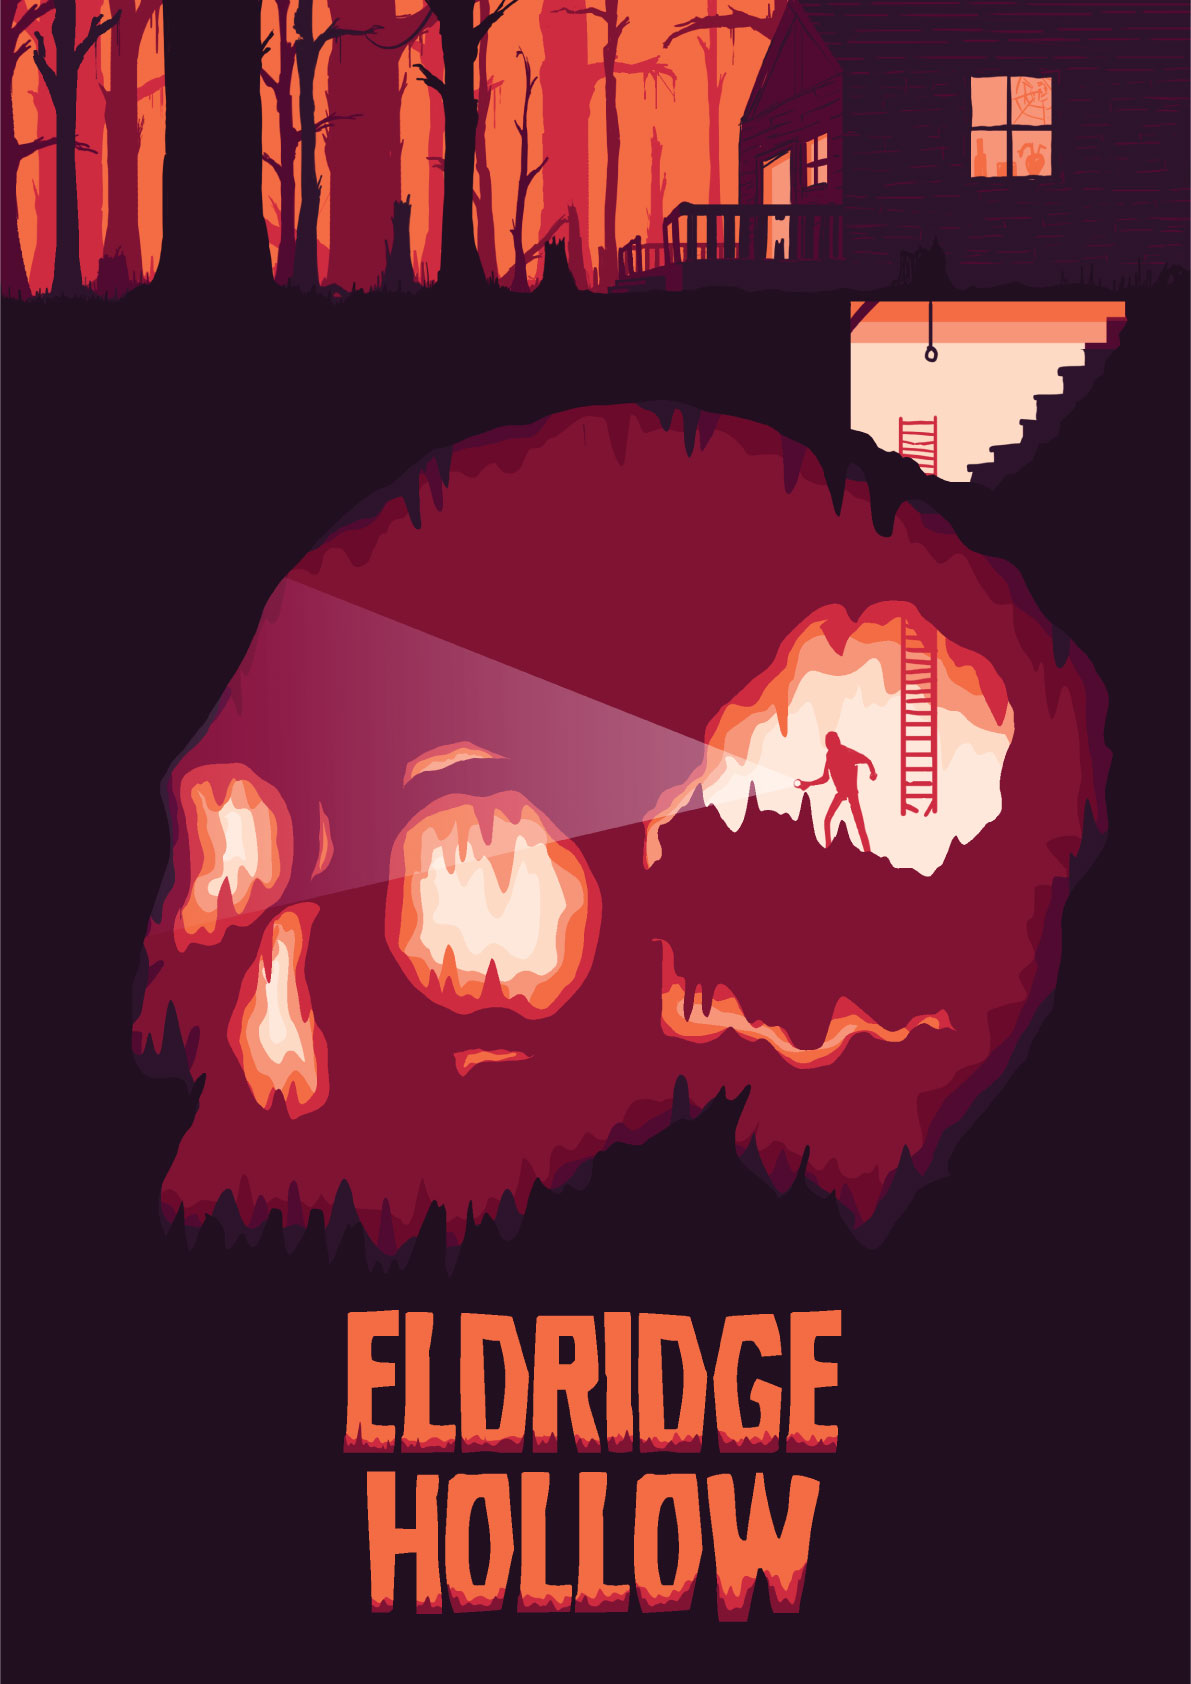 Eldridge-Hollow.jpg